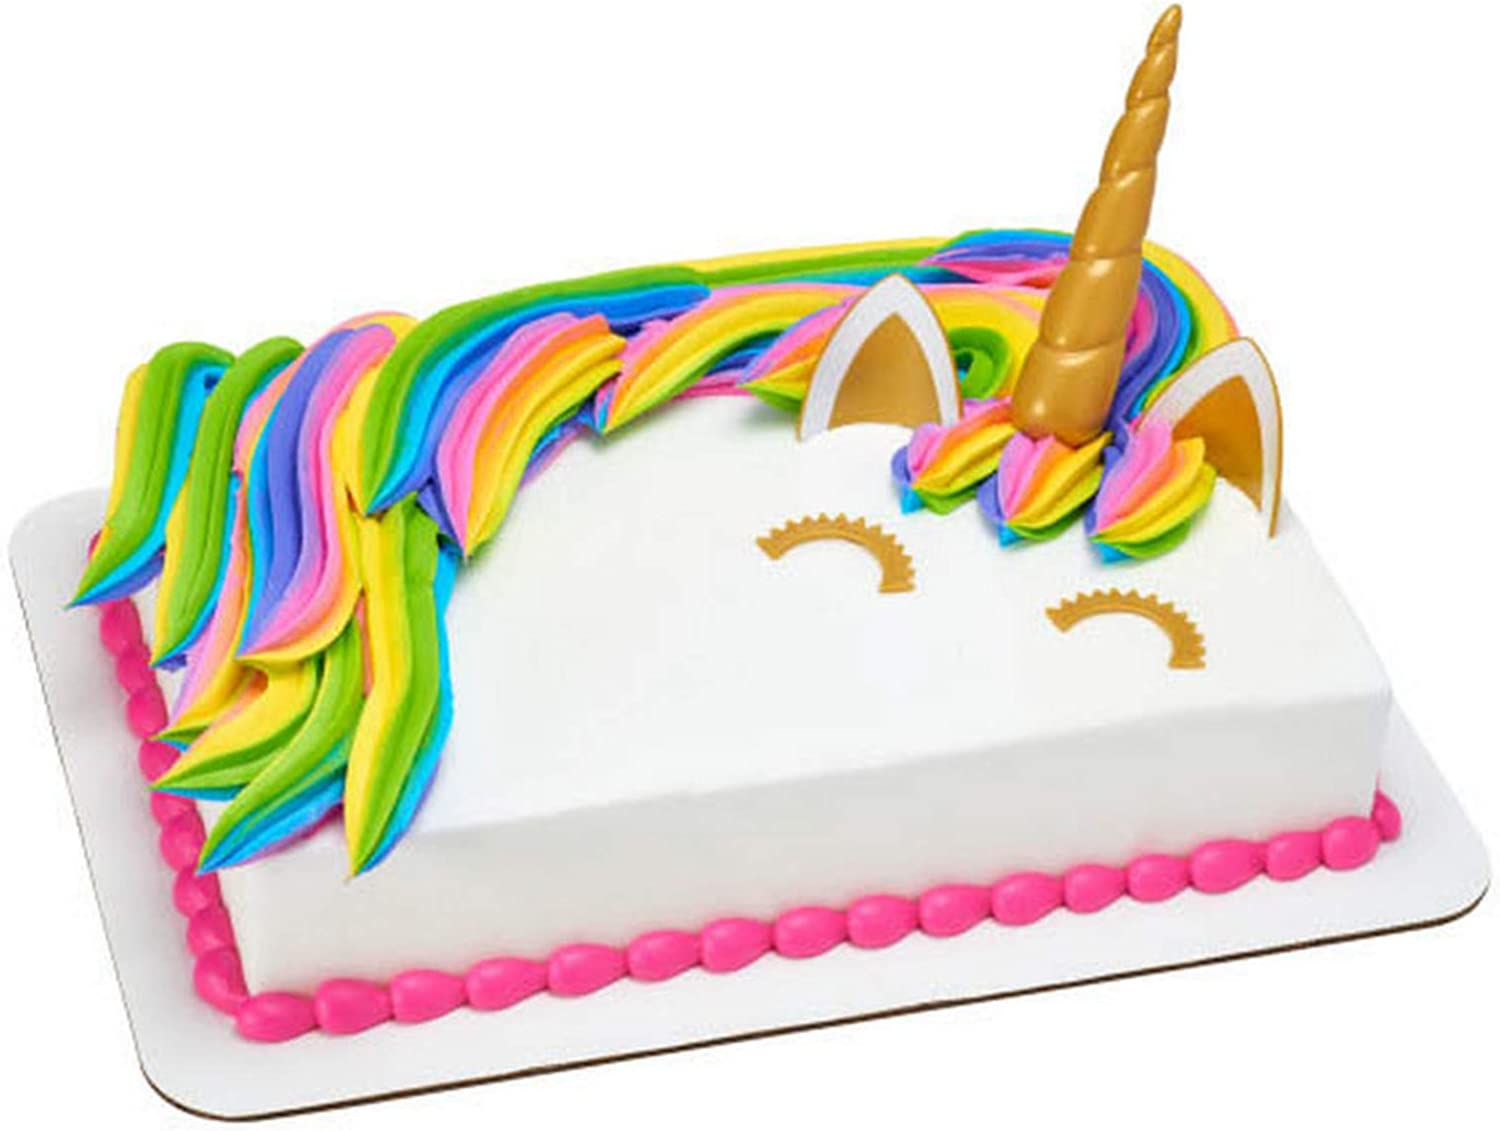 DecoPac Cake Decorating UNICORN CREATIONS Cake Topper for Birthdays and Parties